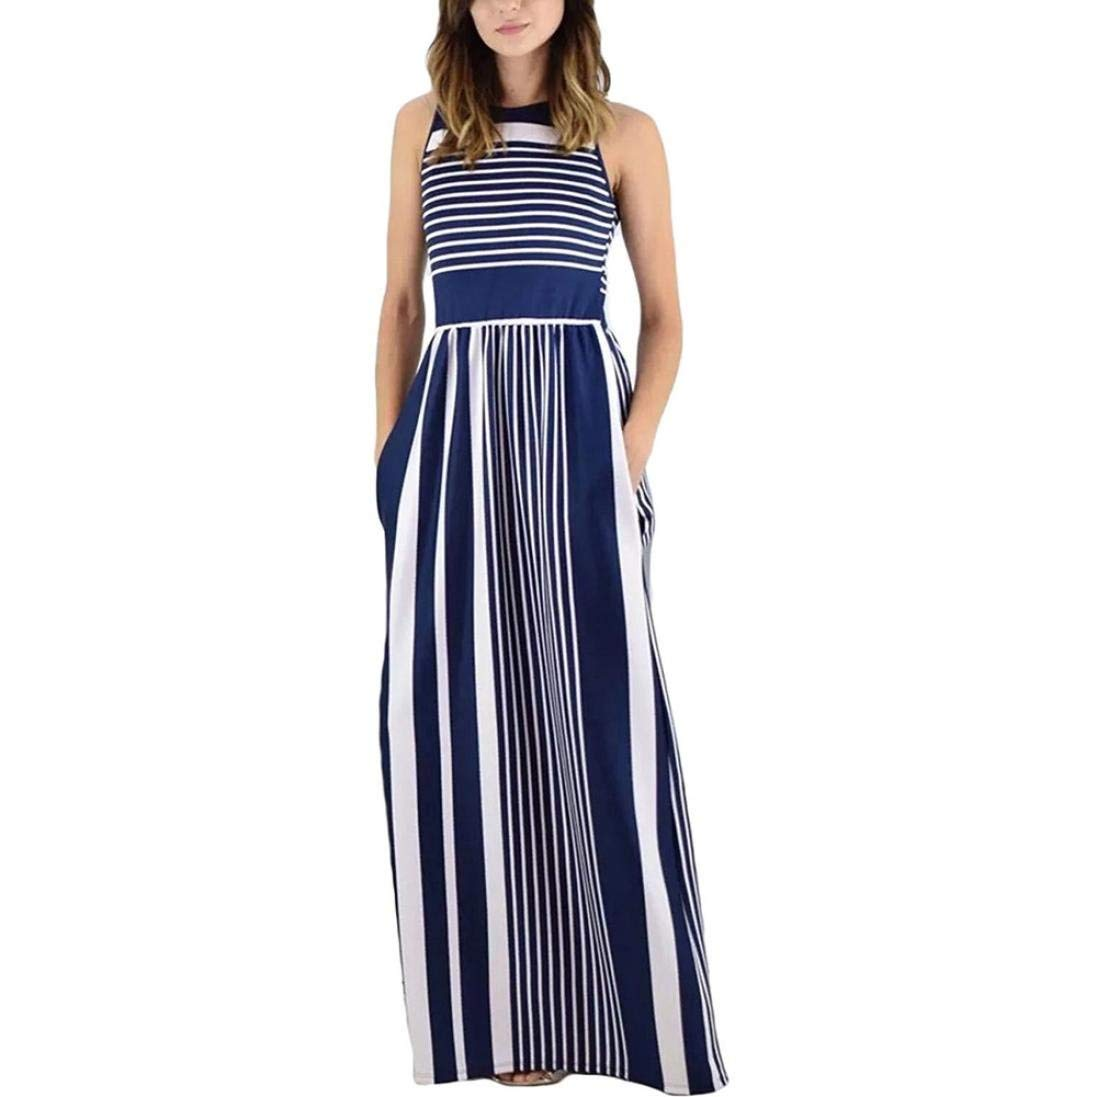 grey Womens Casual Dress Women's Sleeveless Casual Beach Dress Summer Dress Crewneck Striped Long Maxi Dress With Pockets Dresses Wild Tight for Women (color   red, Size   S)